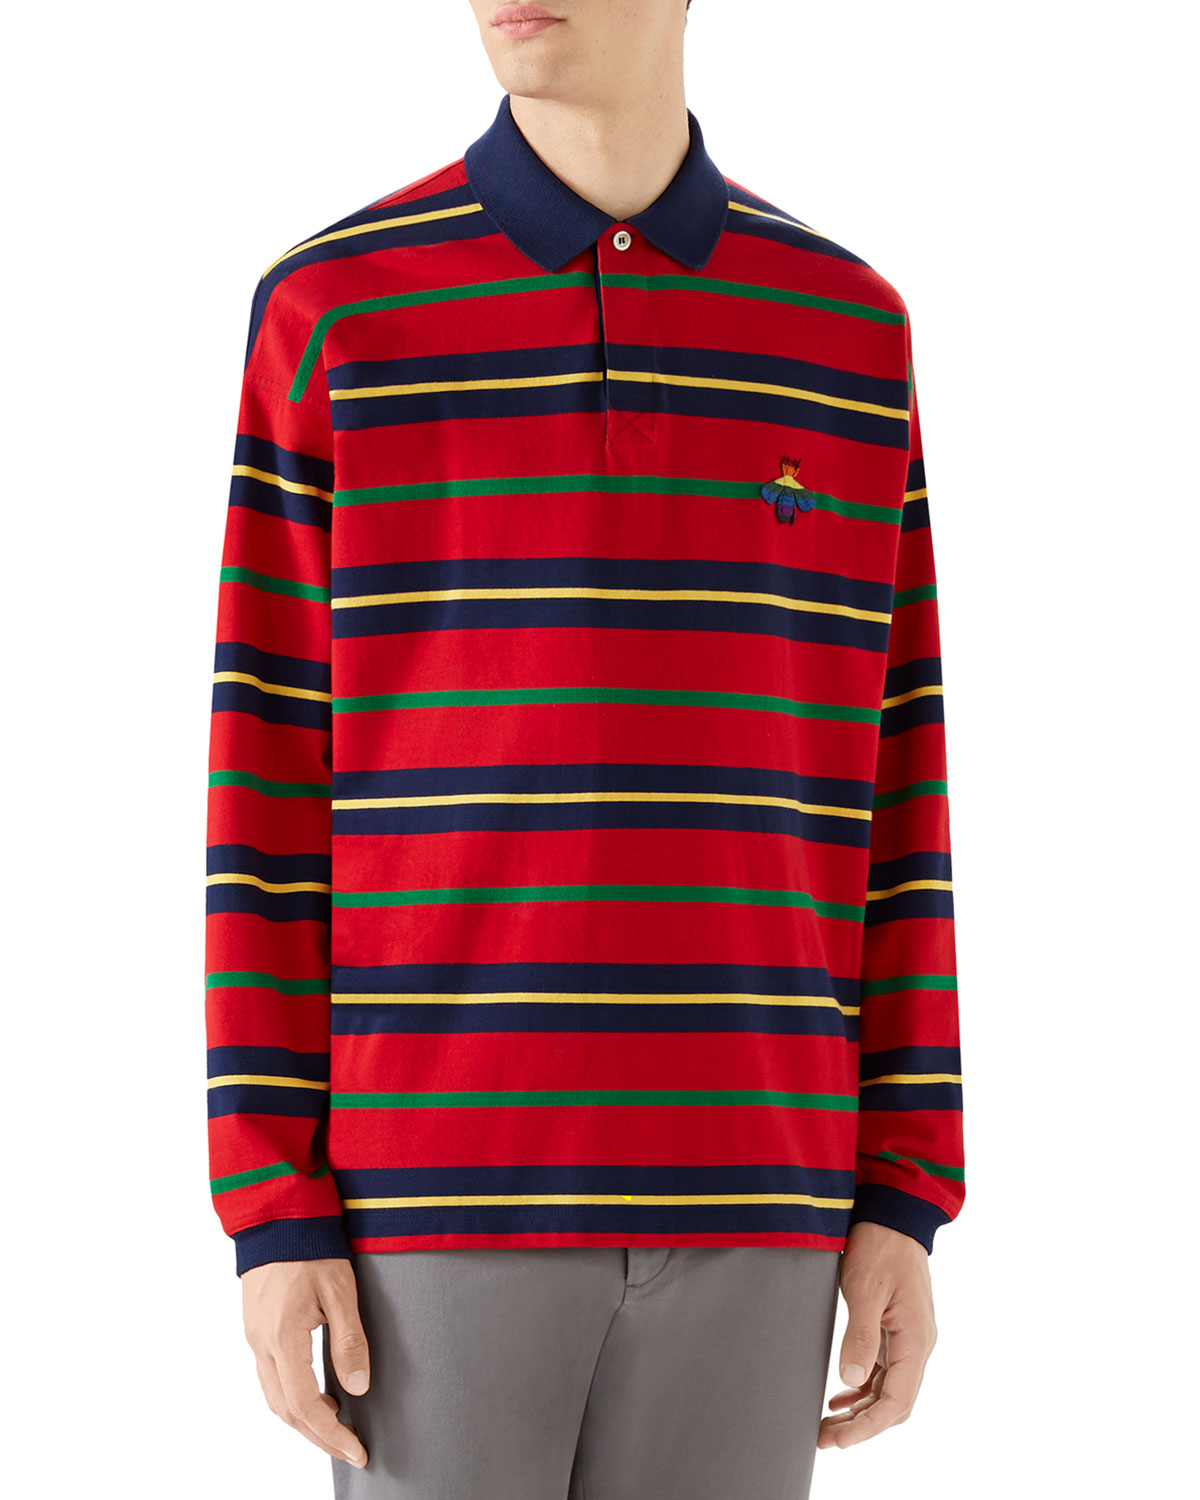 Gucci Mens Long Sleeve Rugby Striped Polo Shirt Neiman Marcus